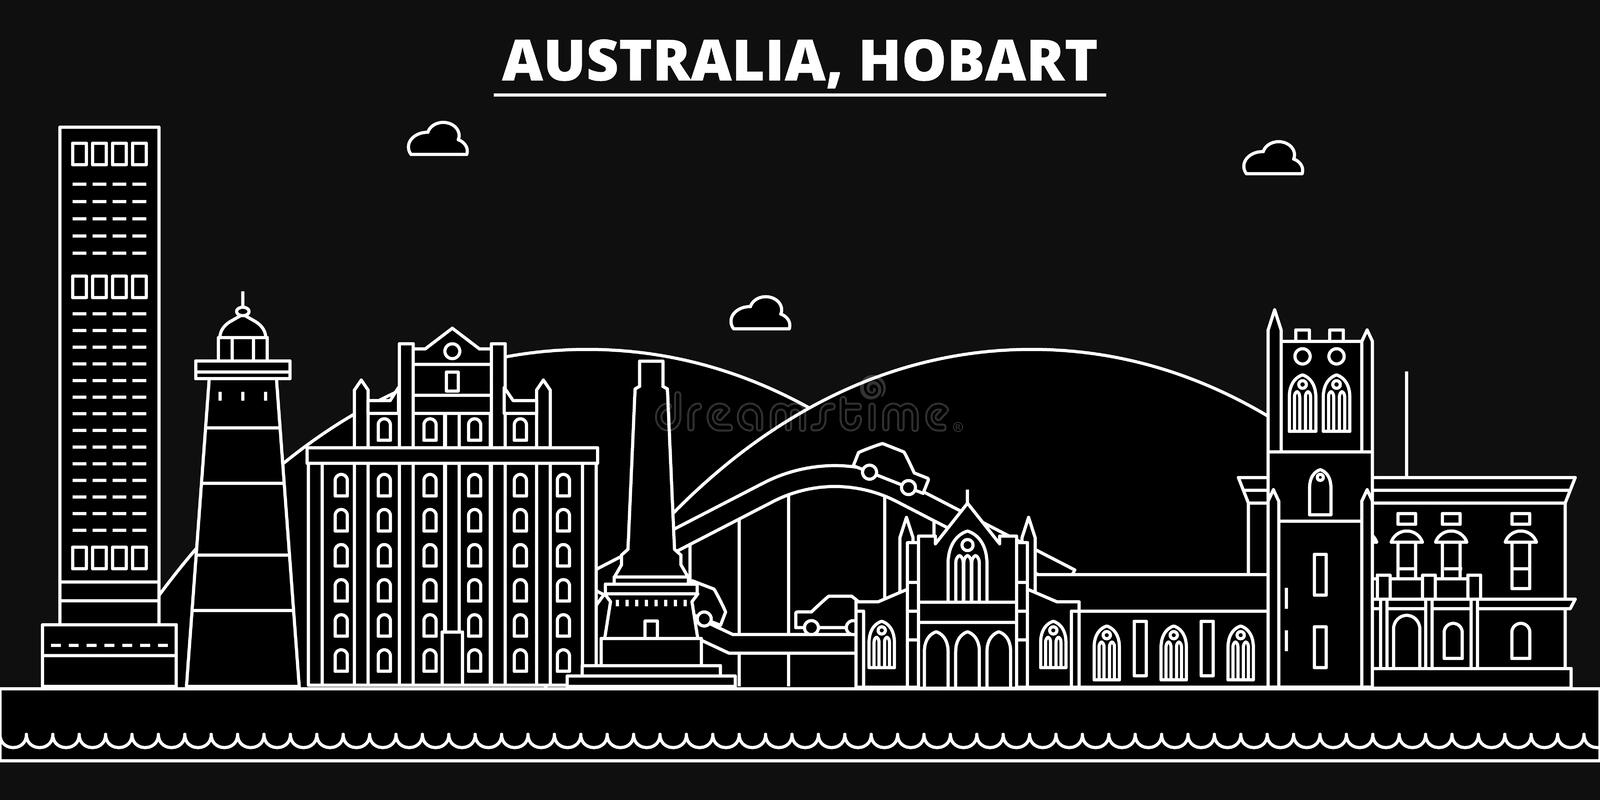 Hobart silhouette skyline. Australia - Hobart vector city, australian linear architecture, buildings. Hobart travel stock illustration